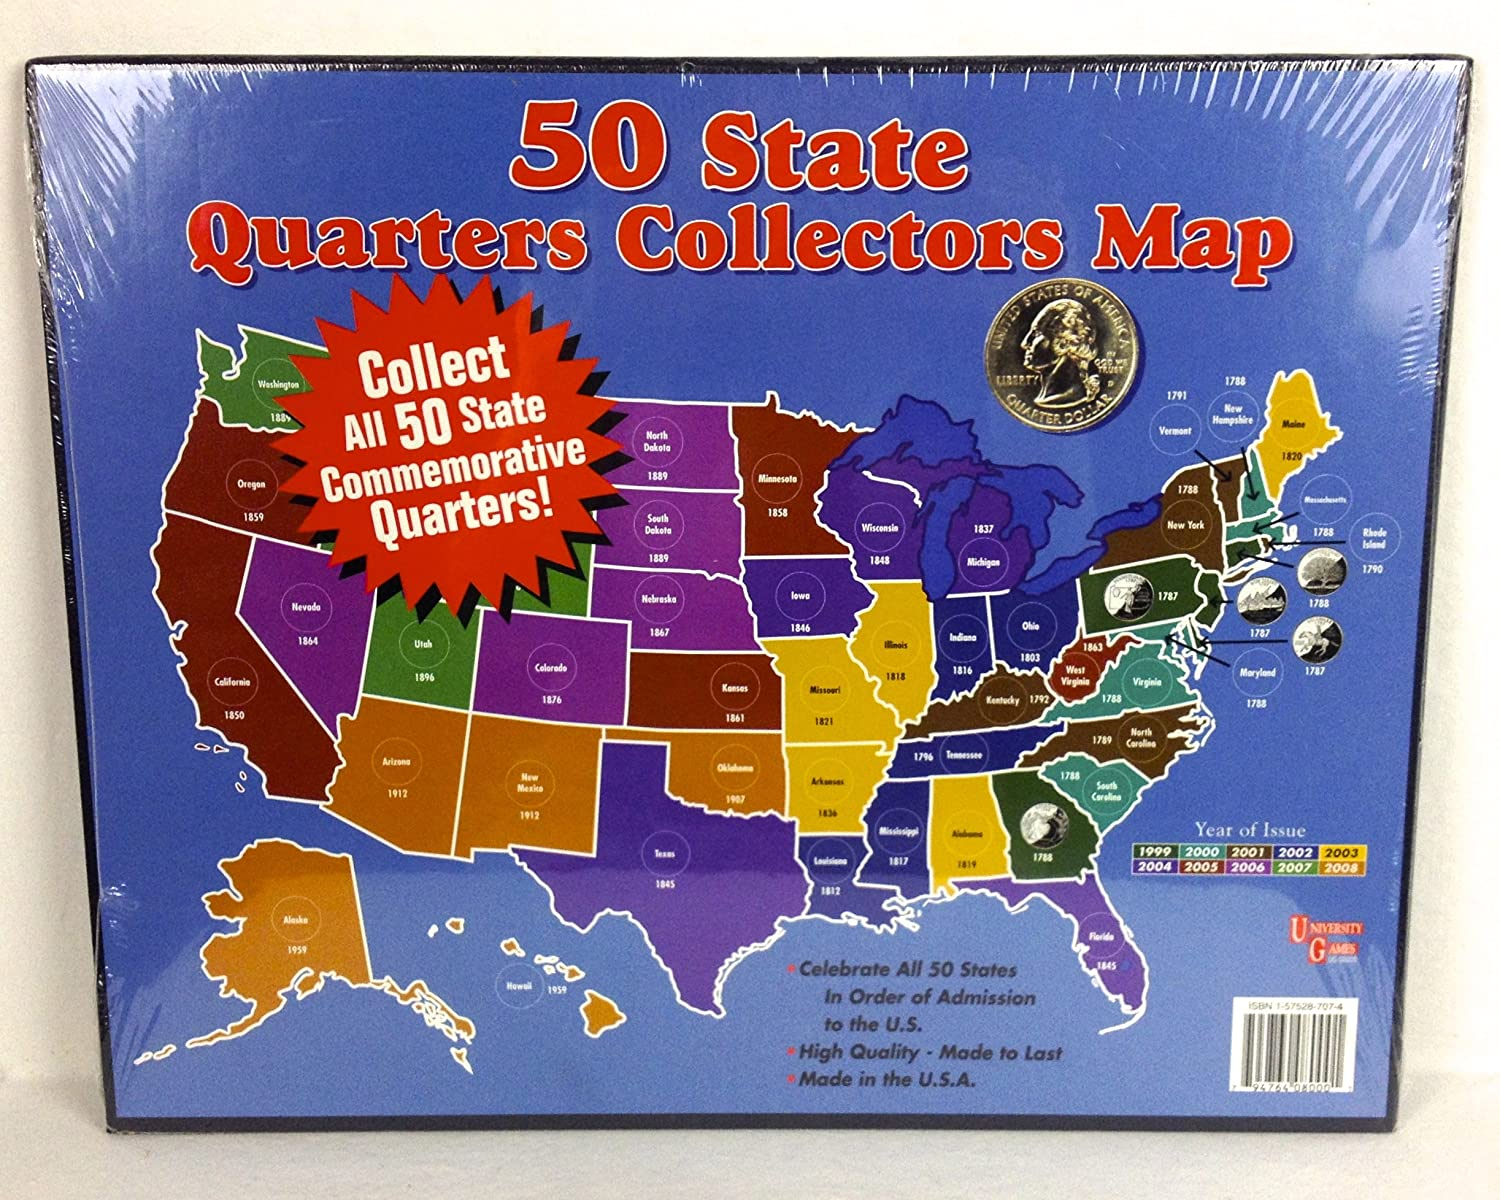 Amazoncom State Quarters Collectors Map Collectible Coins - Us quarter collector map